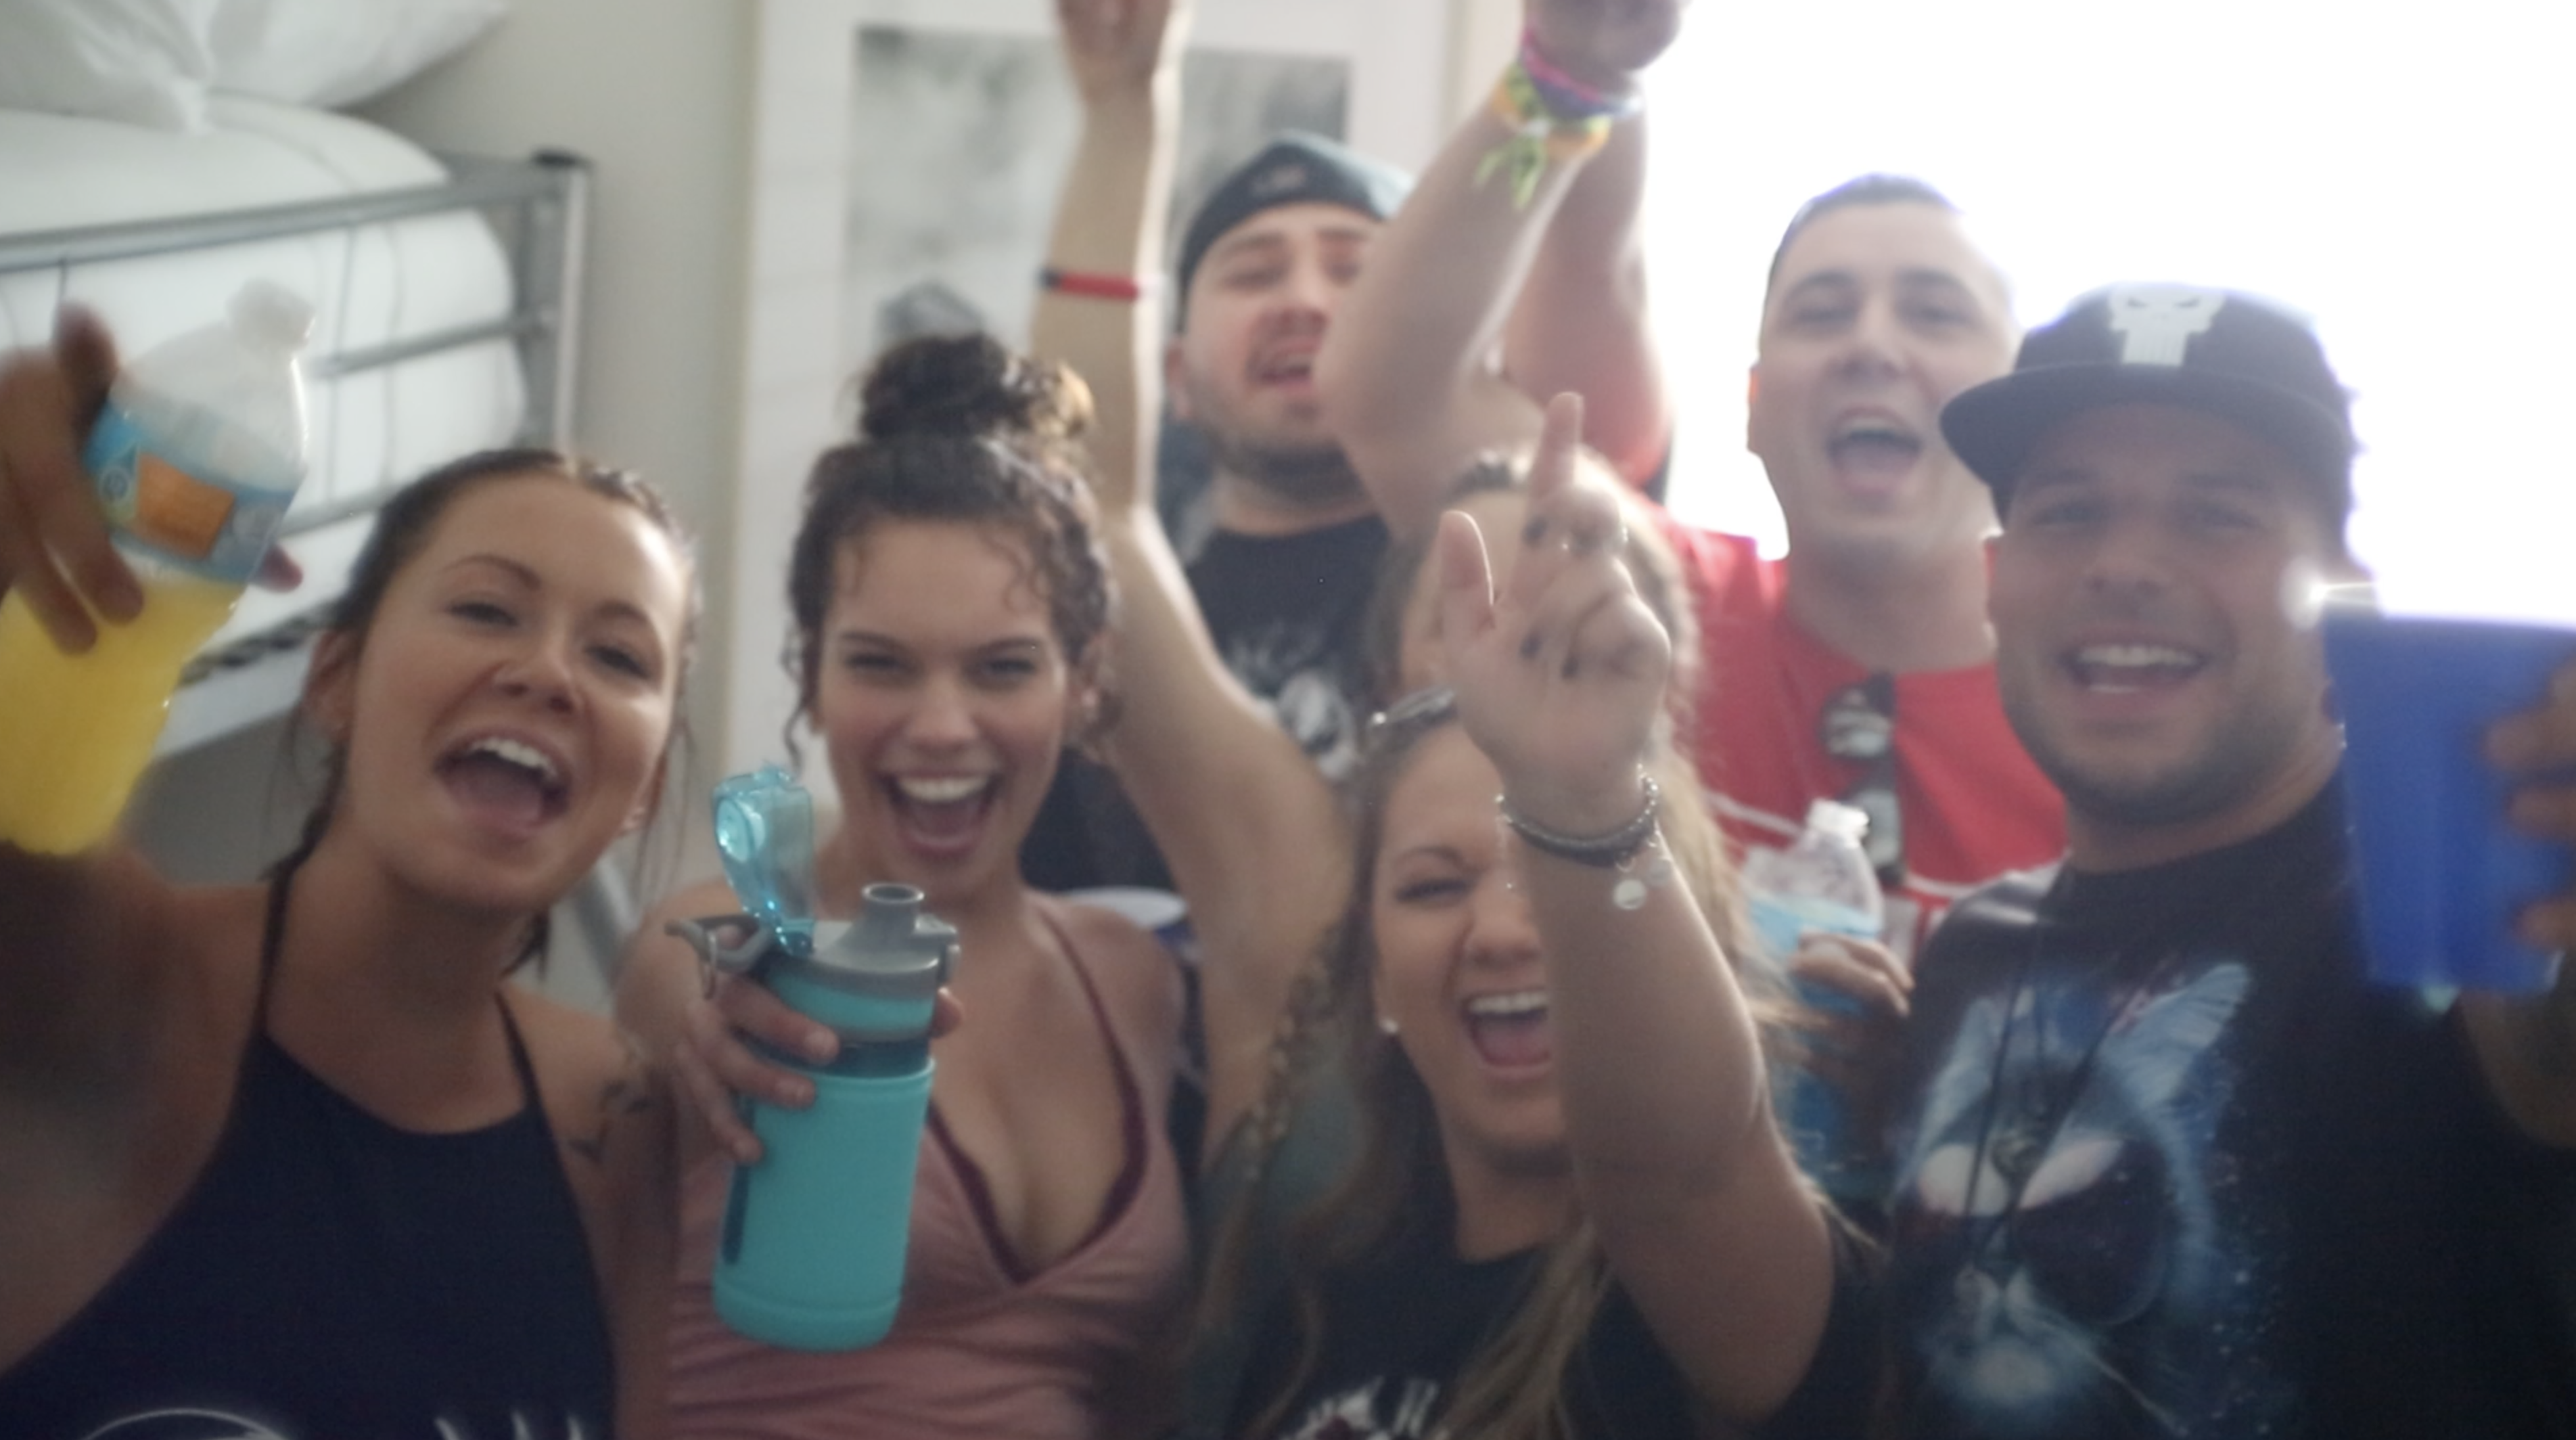 Take A Moment To Review Our Spring Awakening Music Festival Faq